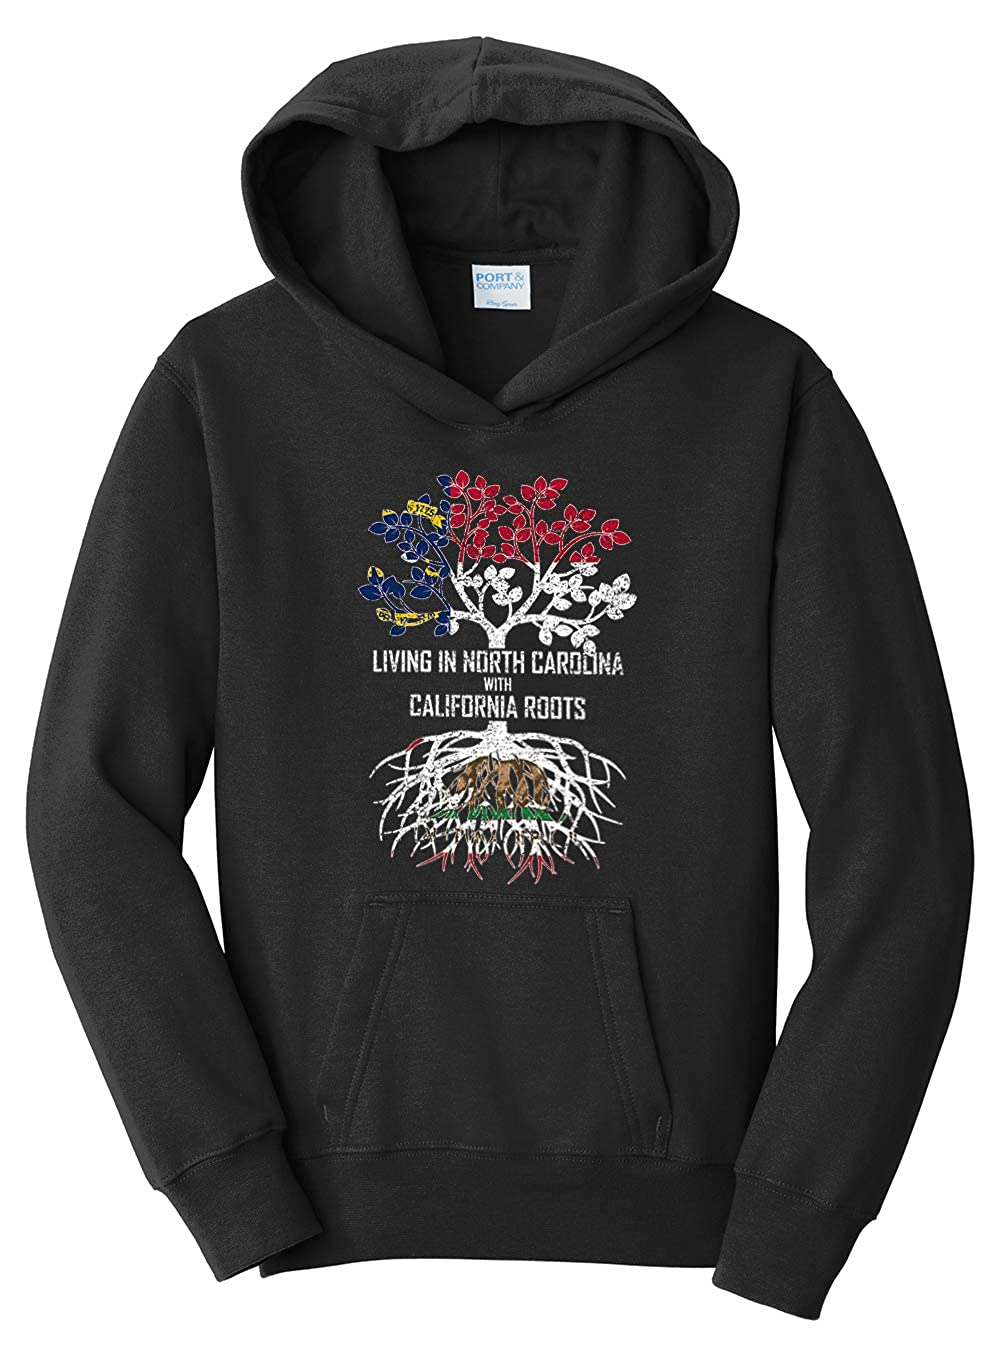 Tenacitee Girls Living in North Carolina with California Roots Hooded Sweatshirt